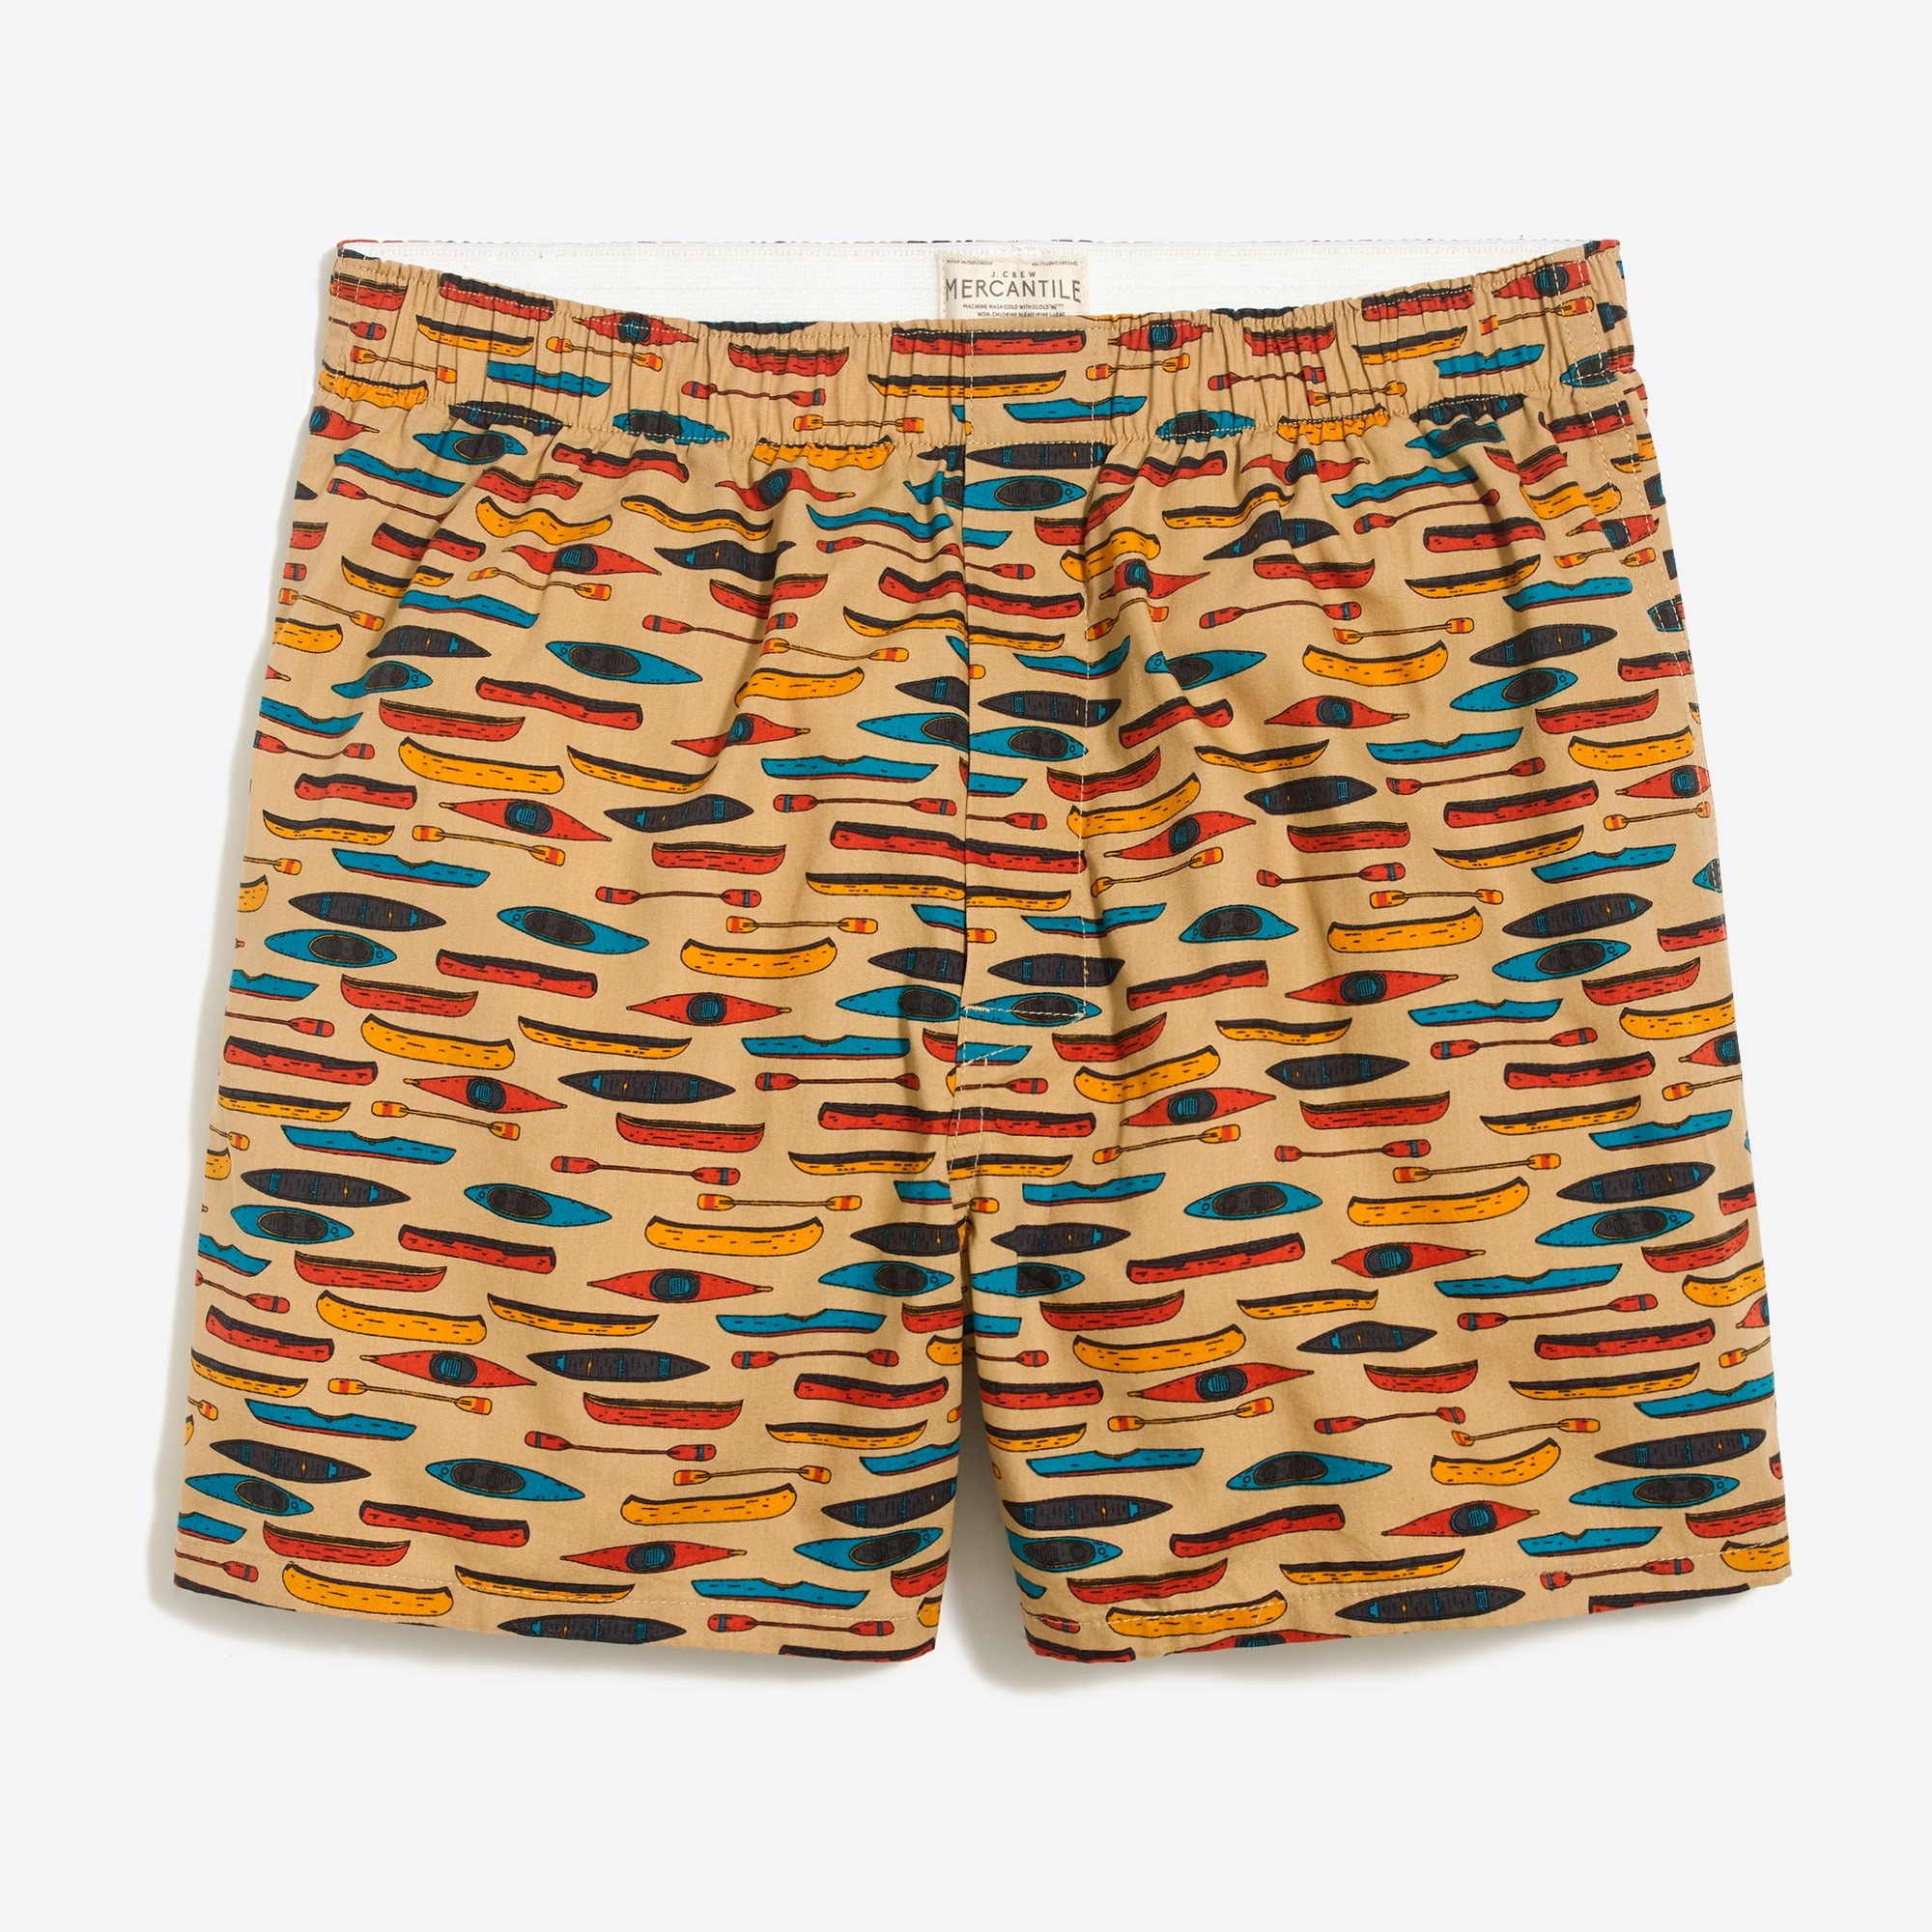 Image 1 for J.Crew Mercantile boxer in kayaks and canoes print